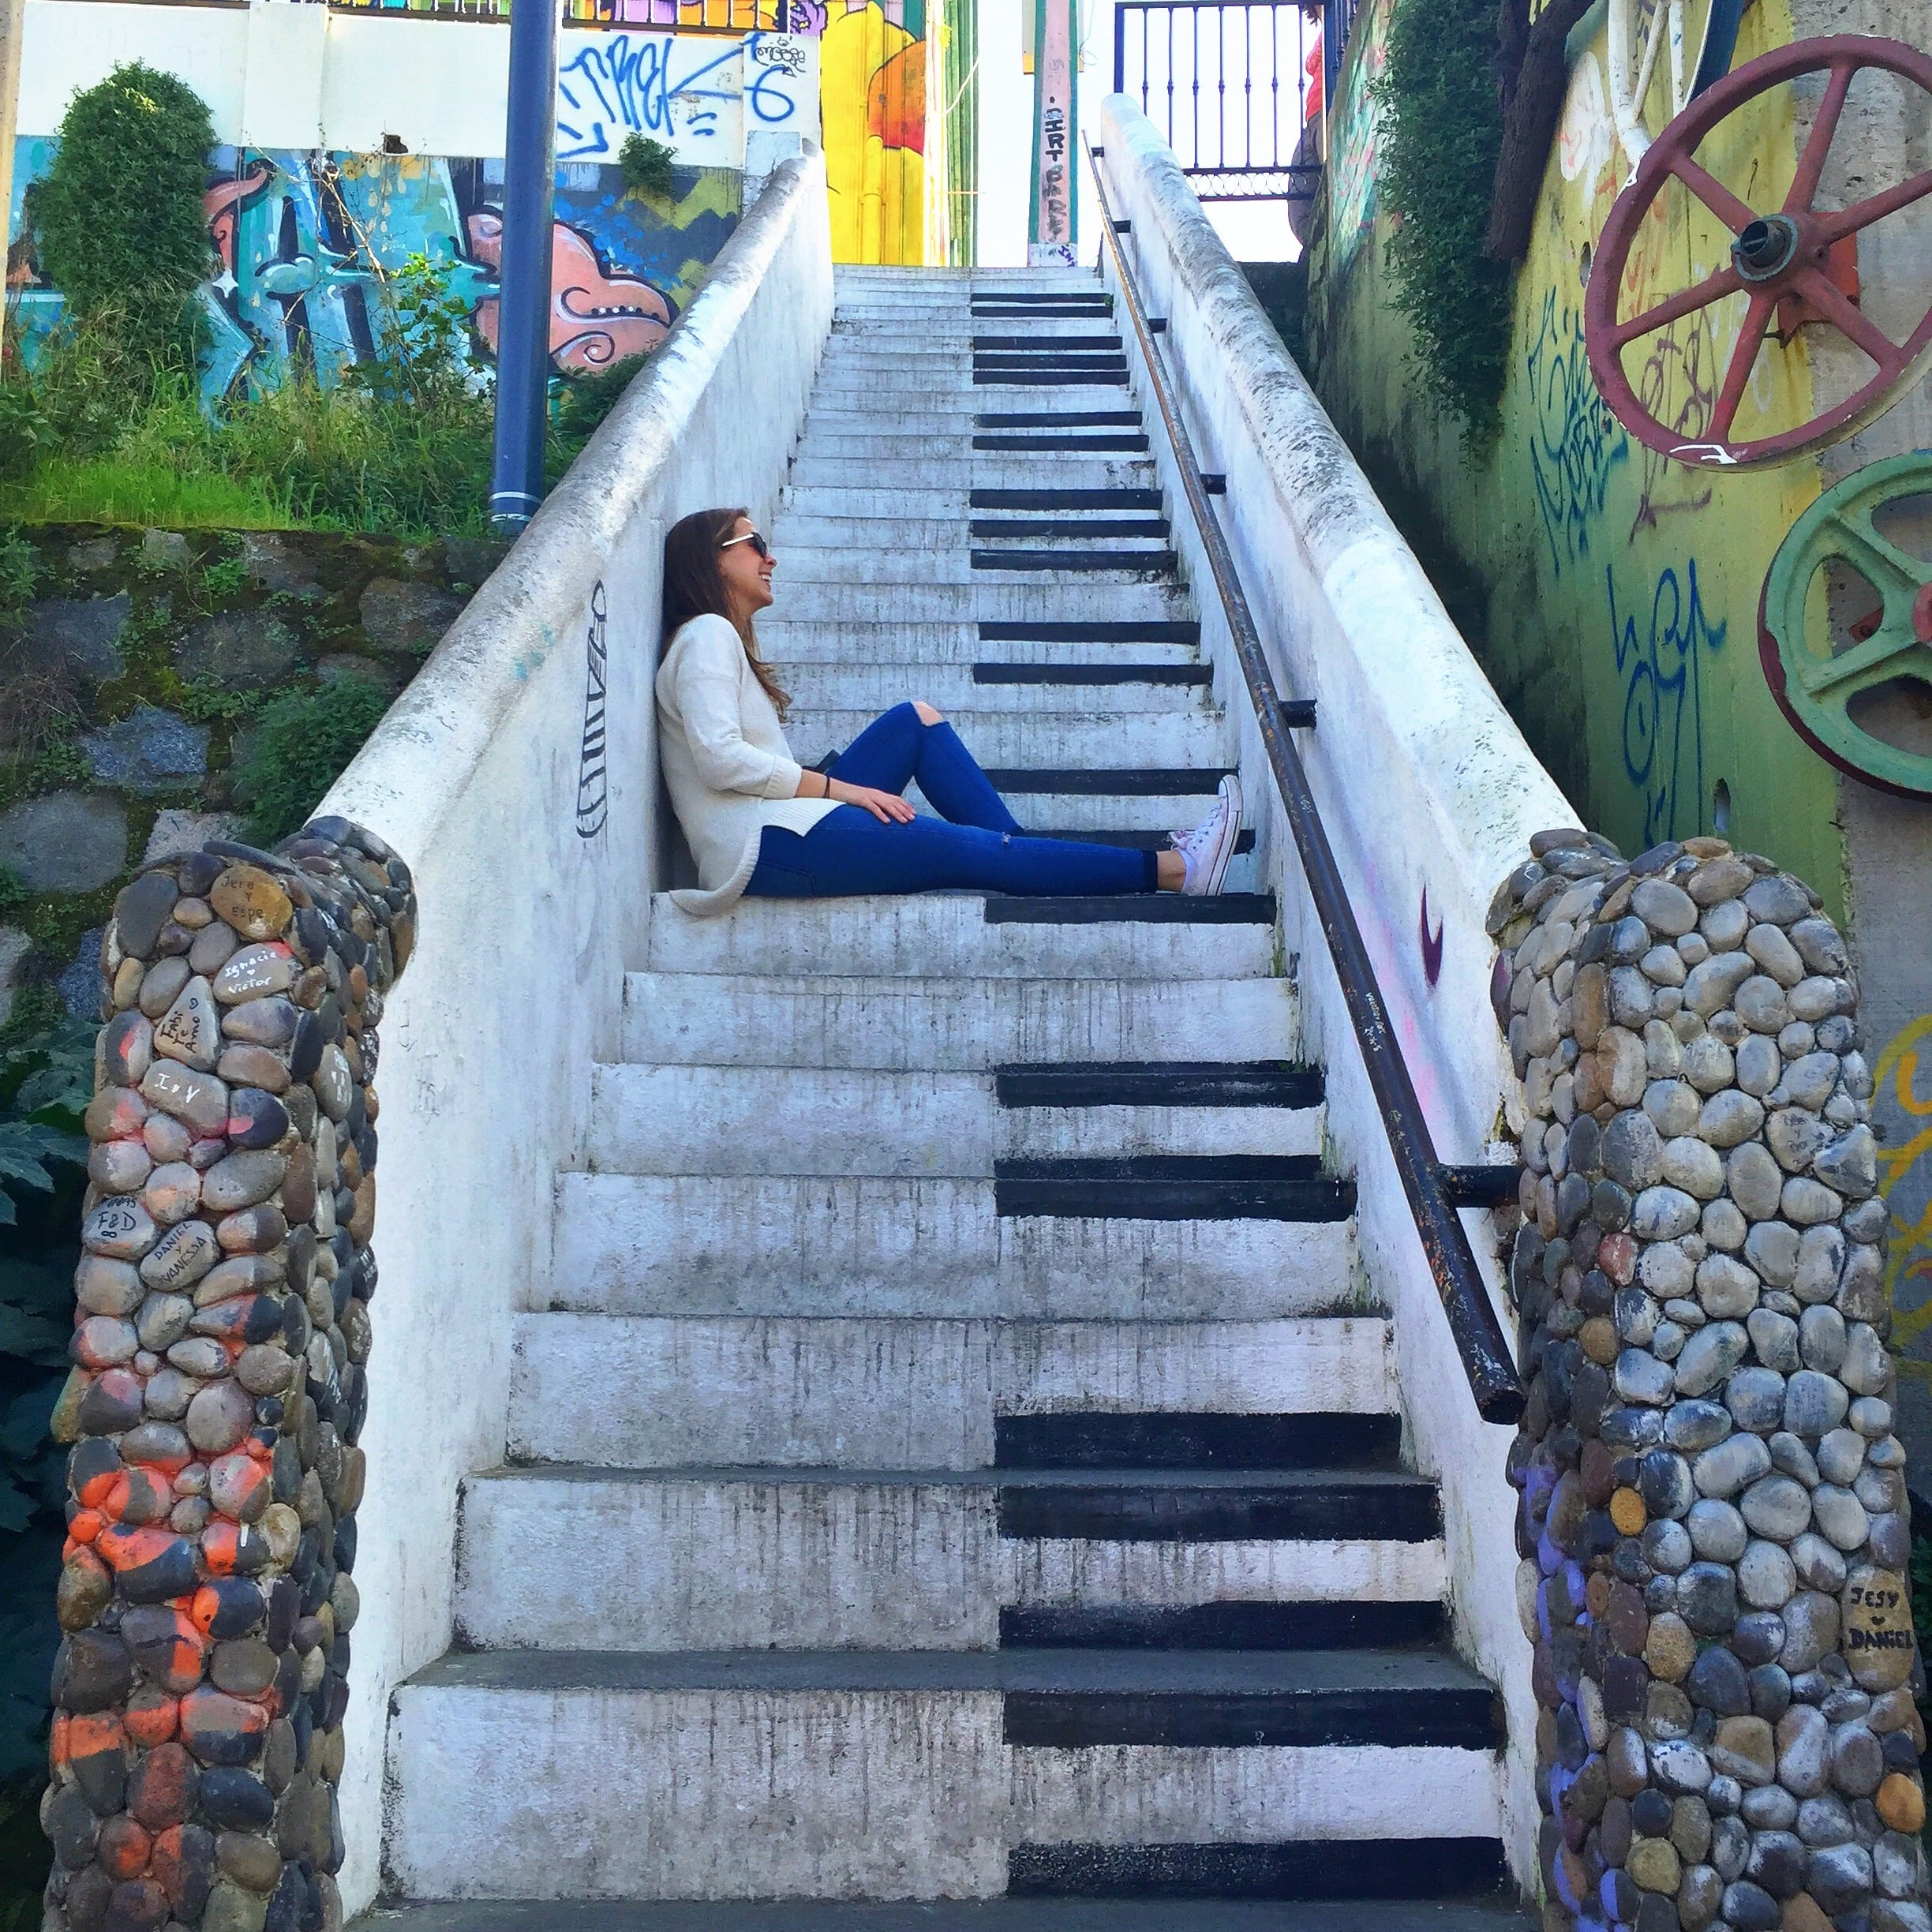 Beethoven Stairs